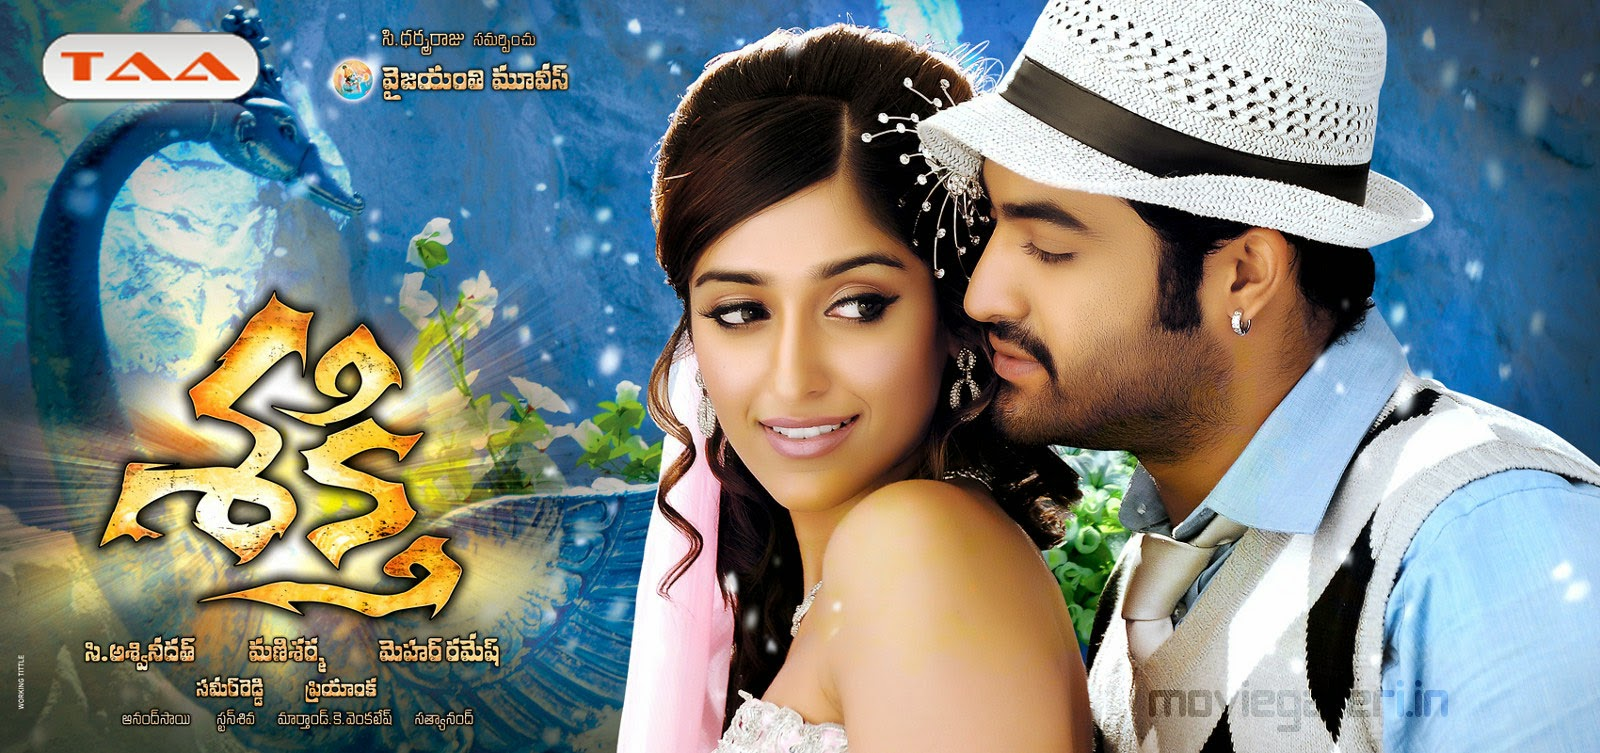 shakti telugu mp3 songs free download